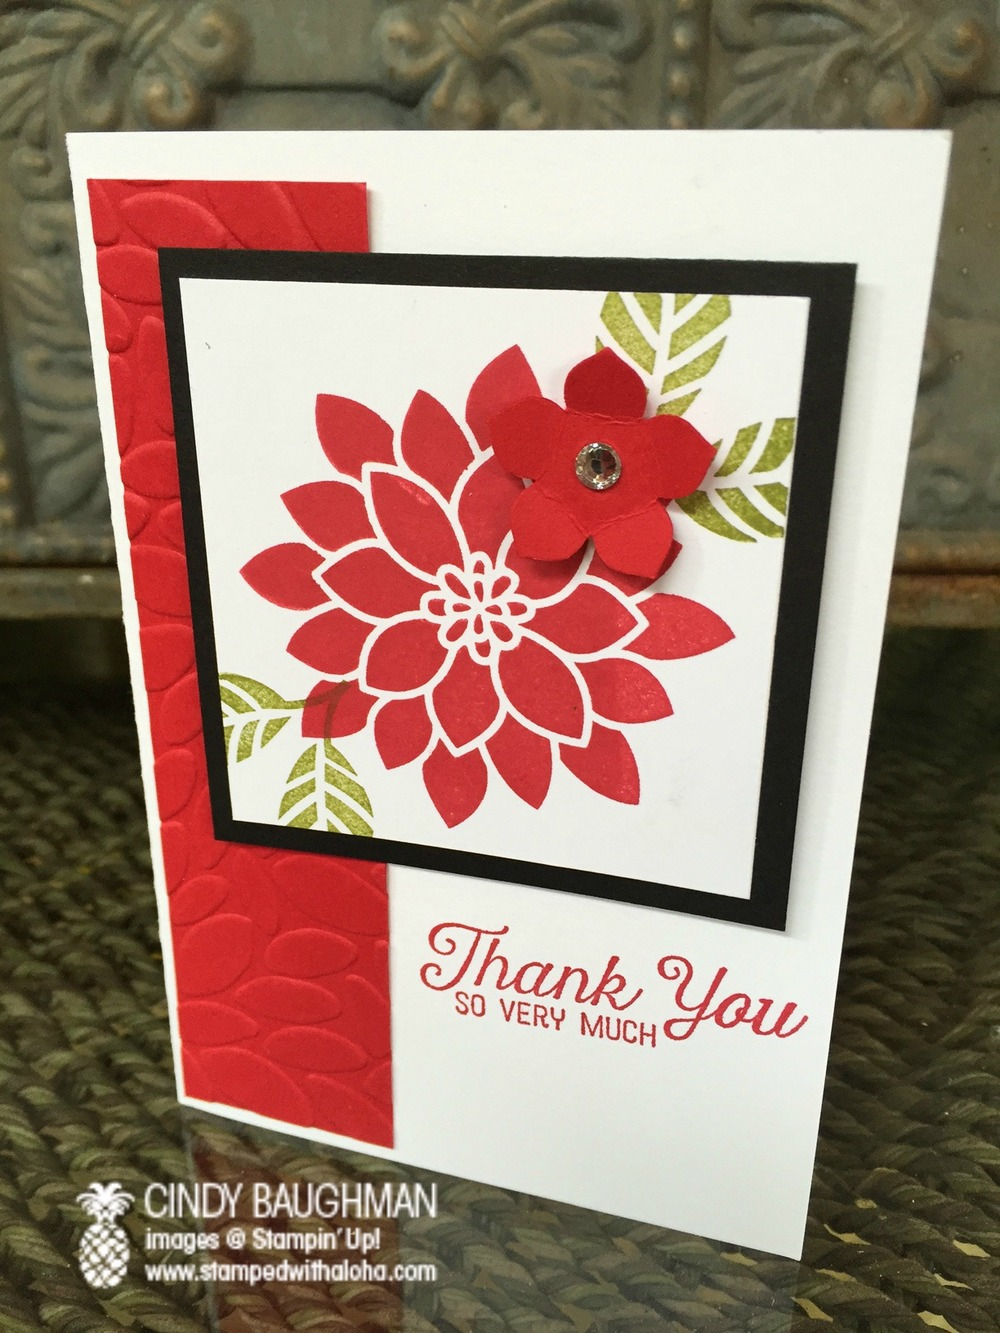 Flourishing Phrases Thank You card - www.stampedwithaloha.com